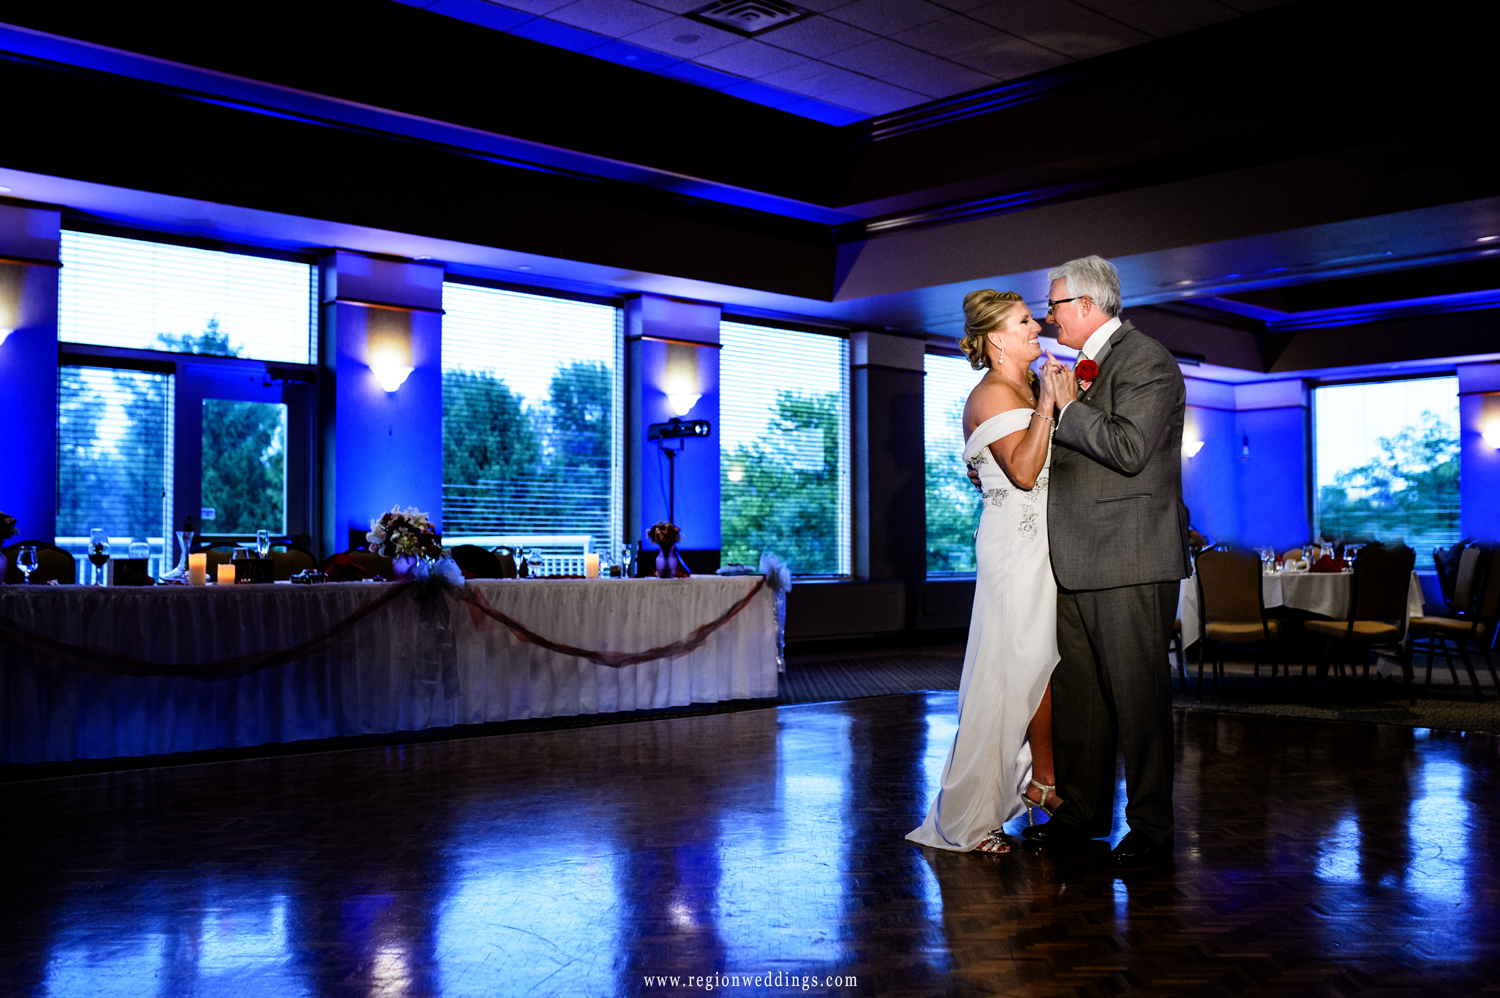 First dance for the bride and groom in the ballroom of Sand Creek Country Club.